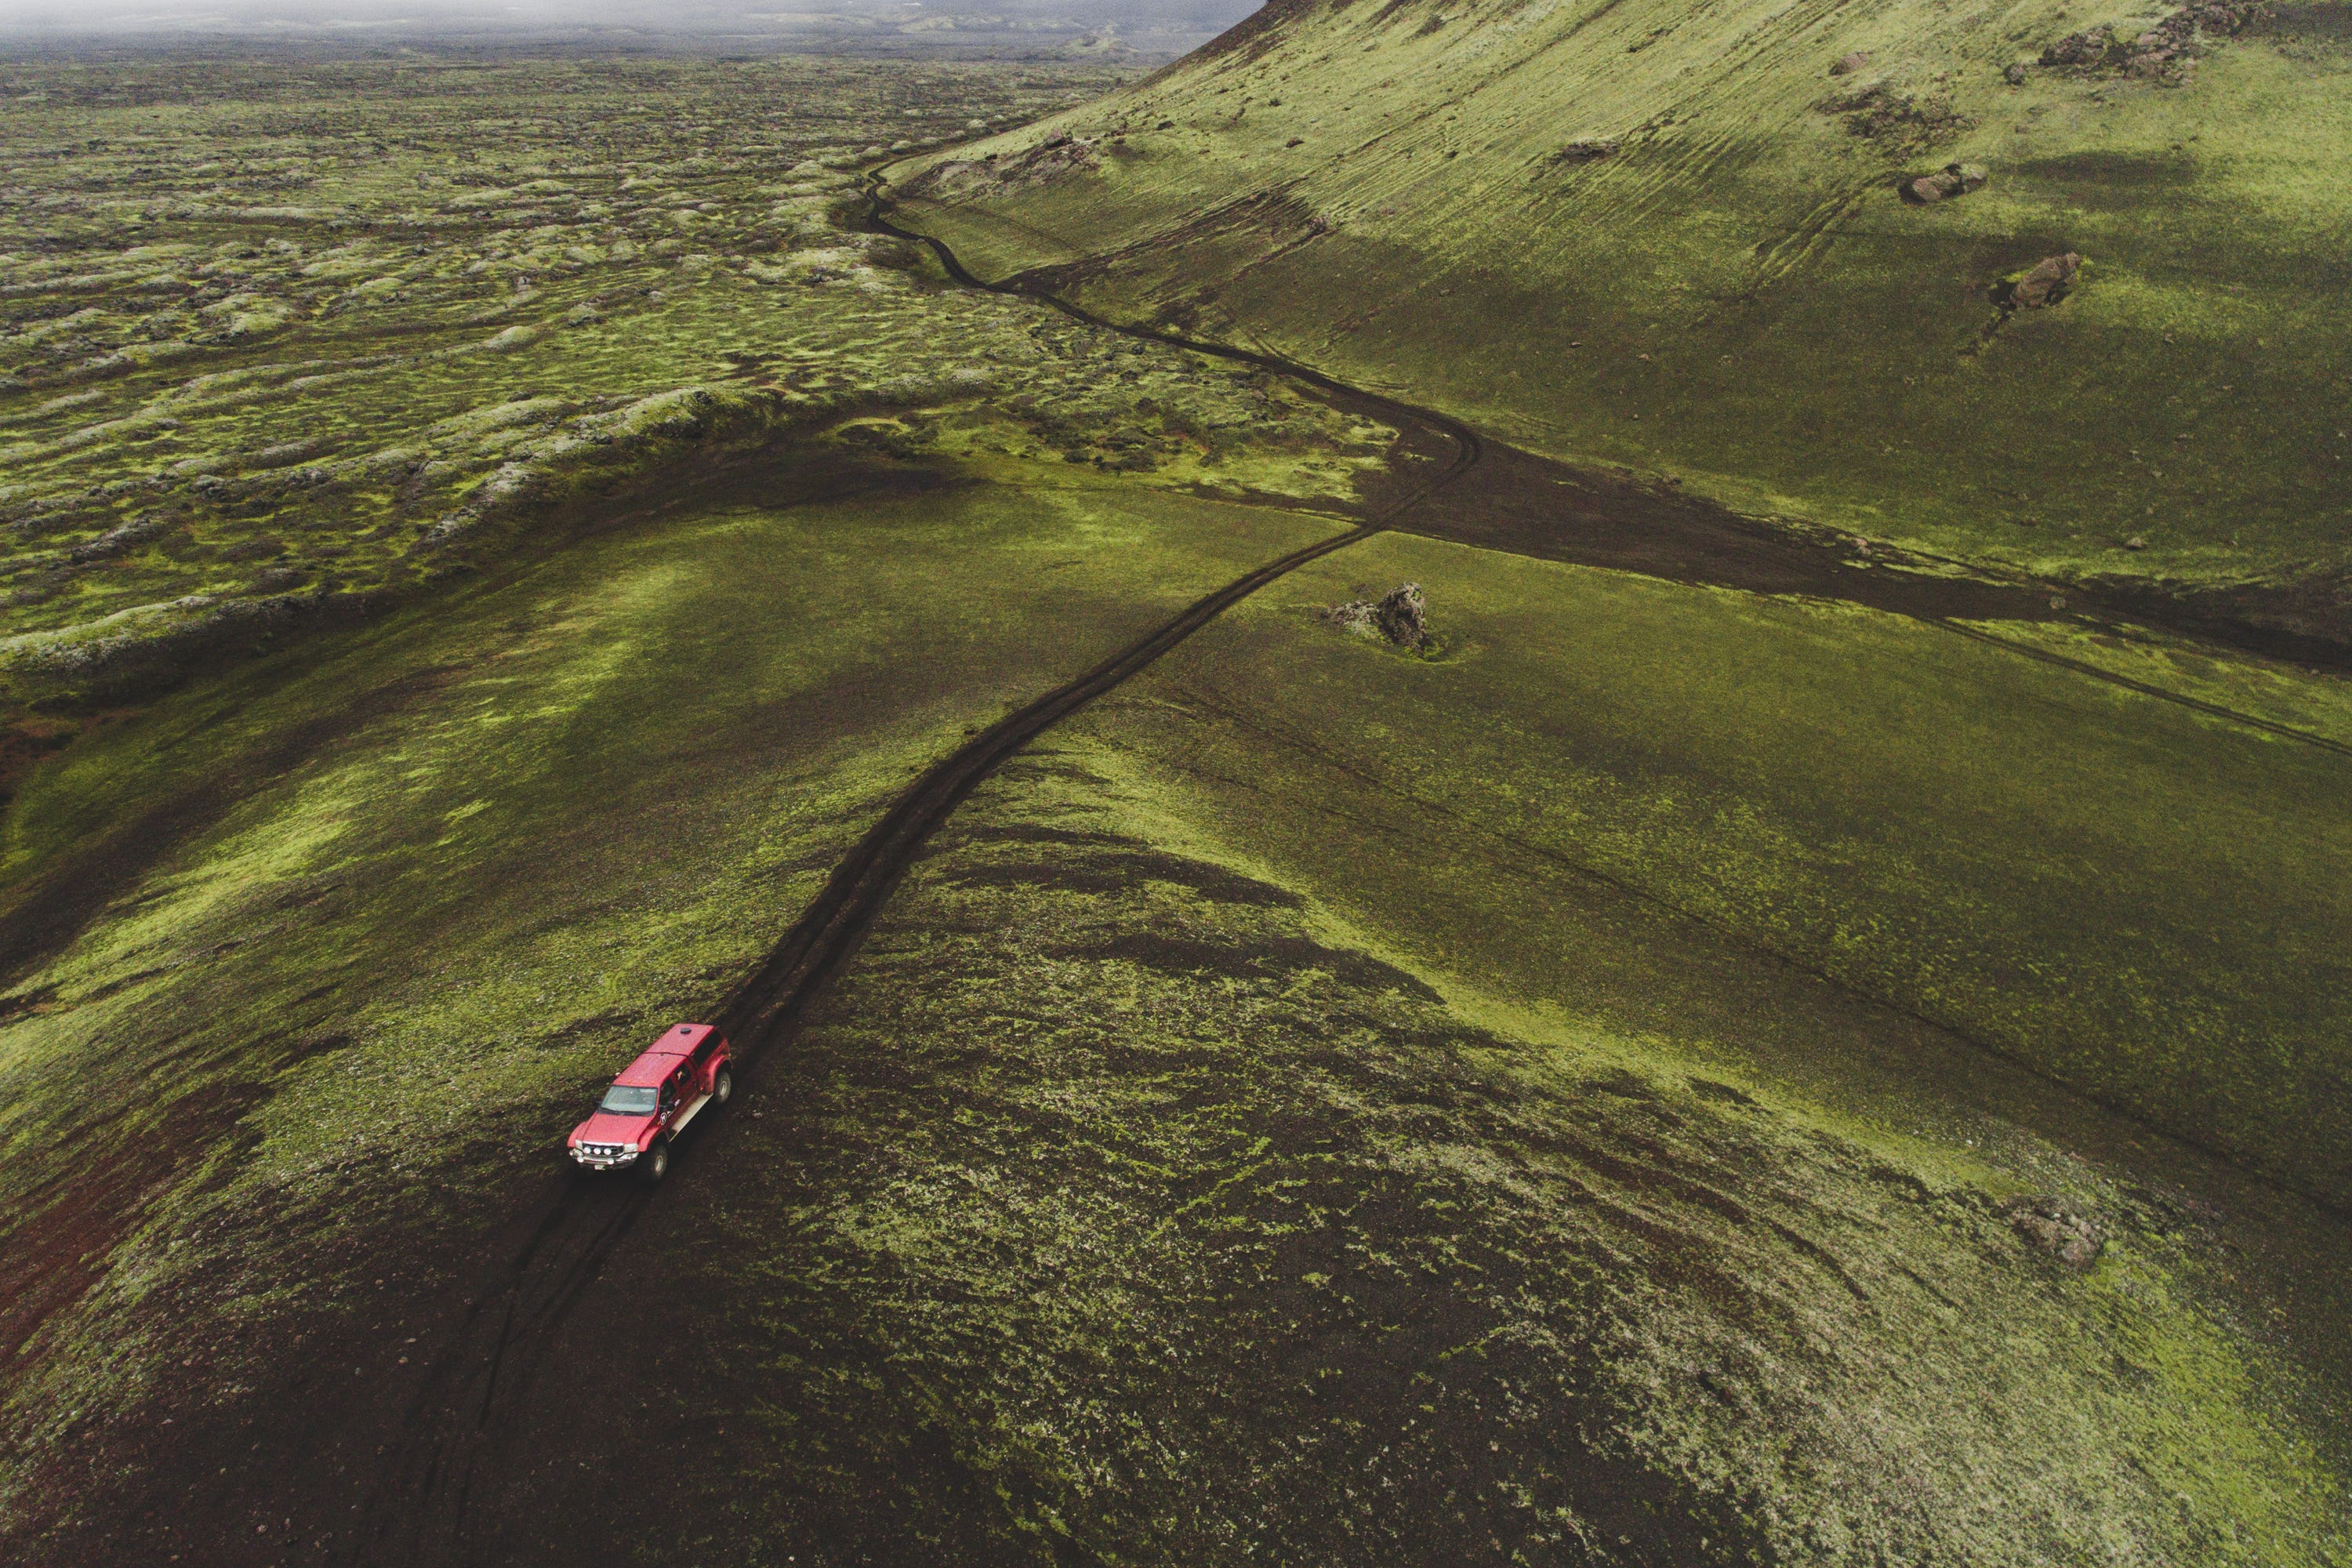 A super jeep crossing the fantastical landscapes of the Icelandic Central Highlands.